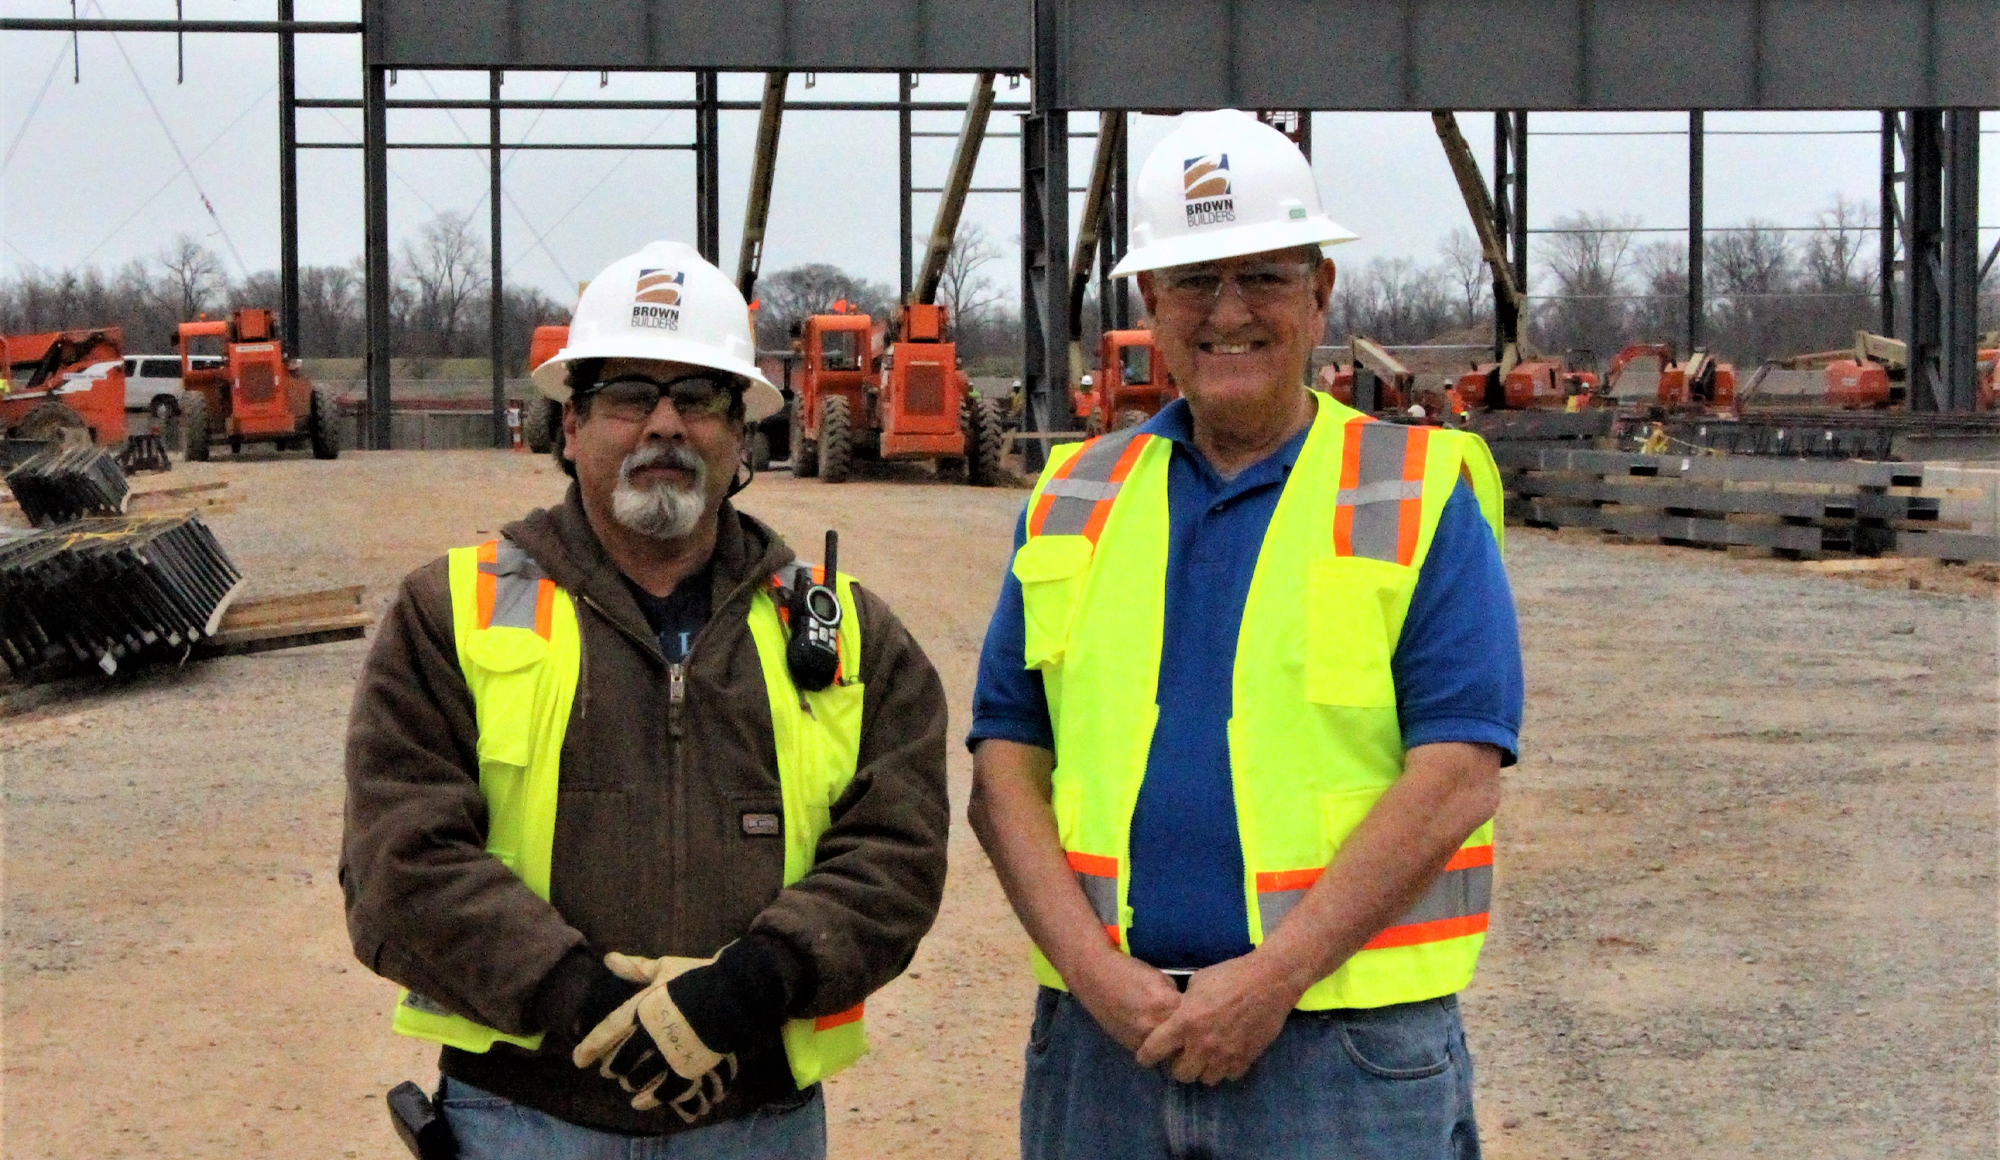 Wayne Brown w/ employee at construction site